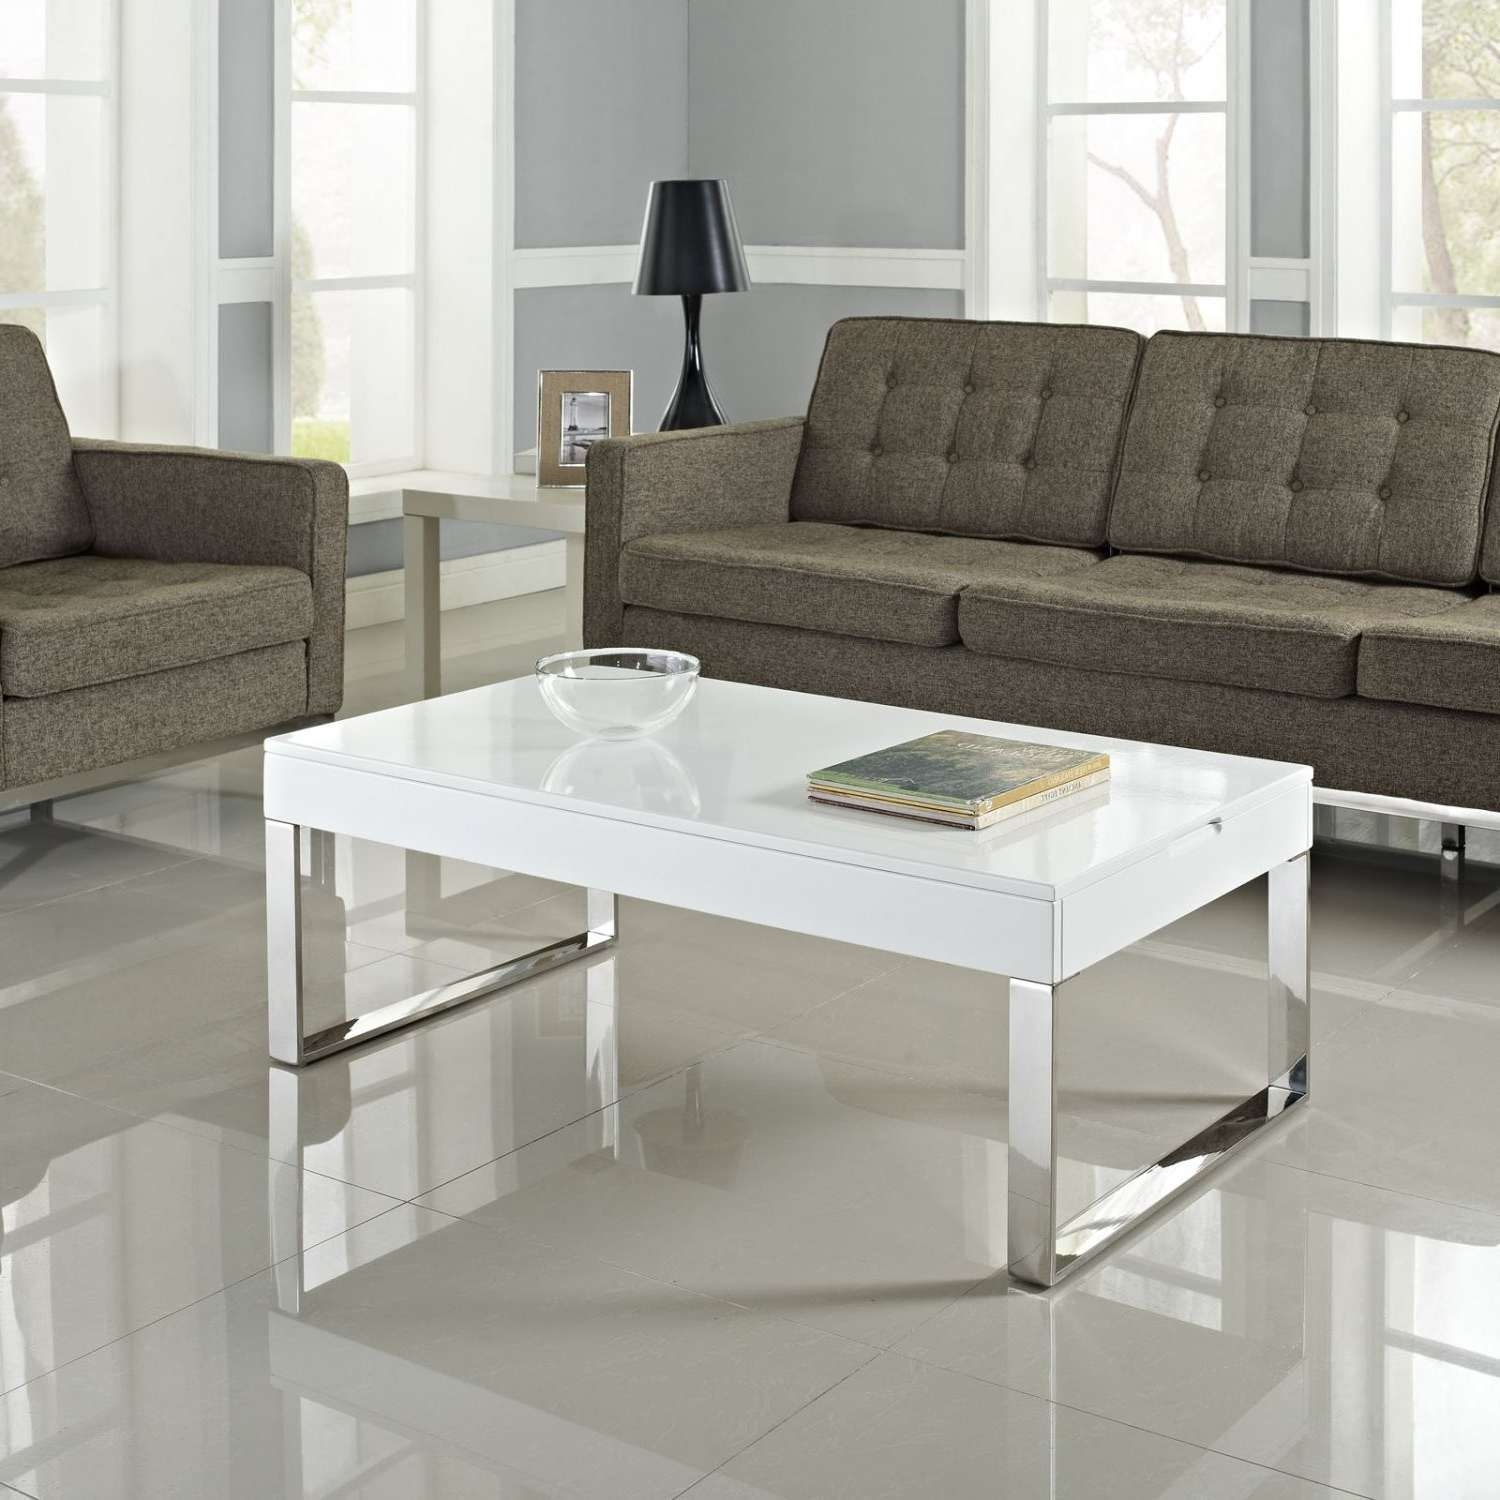 Most Recent Coffee Tables White High Gloss Within White Gloss Lift Coffee Table – All Furniture Usa (View 7 of 20)